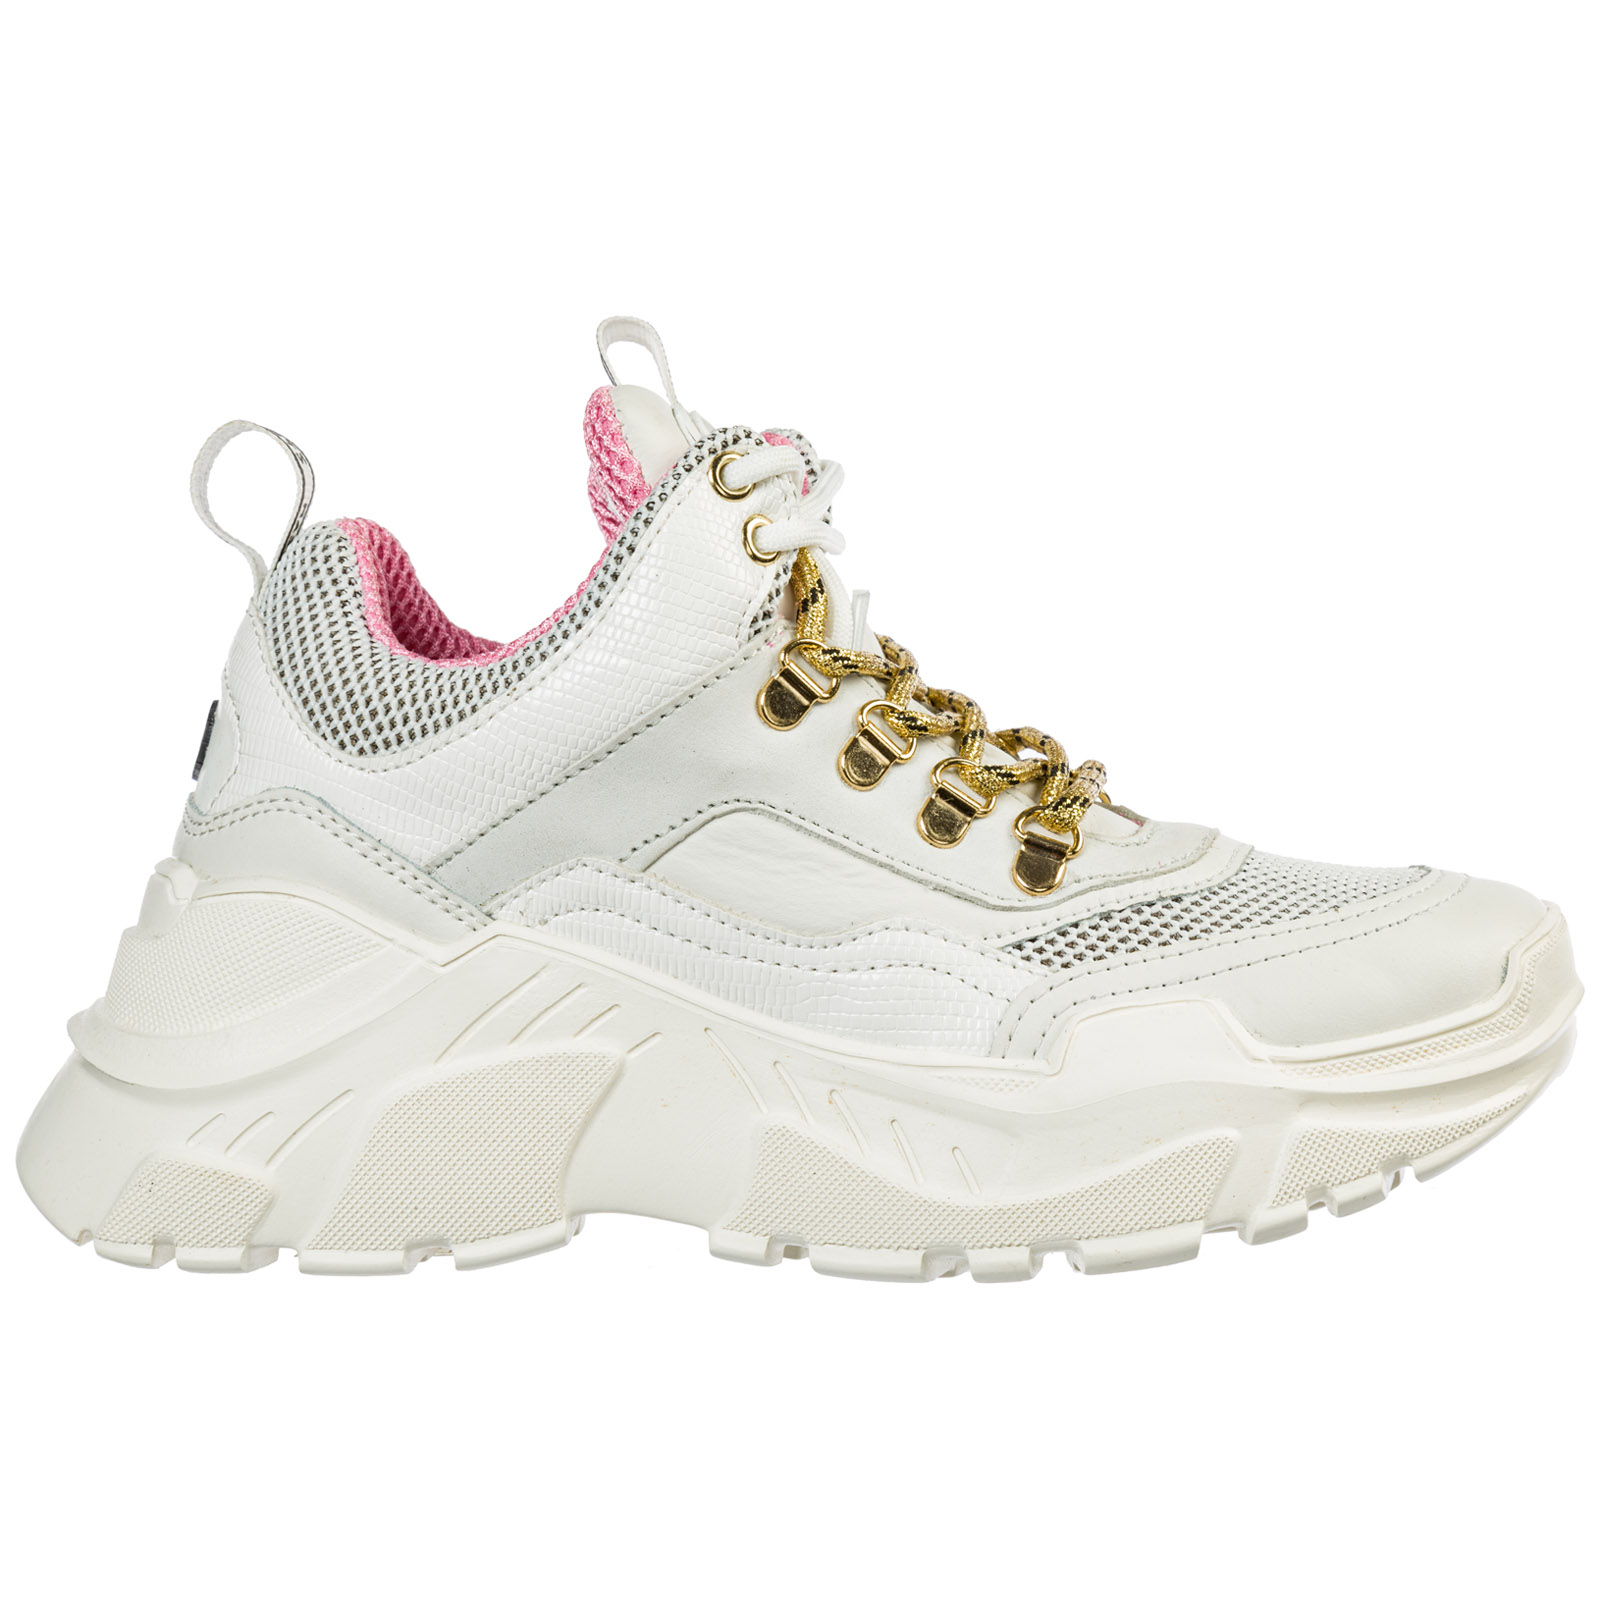 Moa Master Of Arts Women's Shoes Leather Trainers Sneakers In White